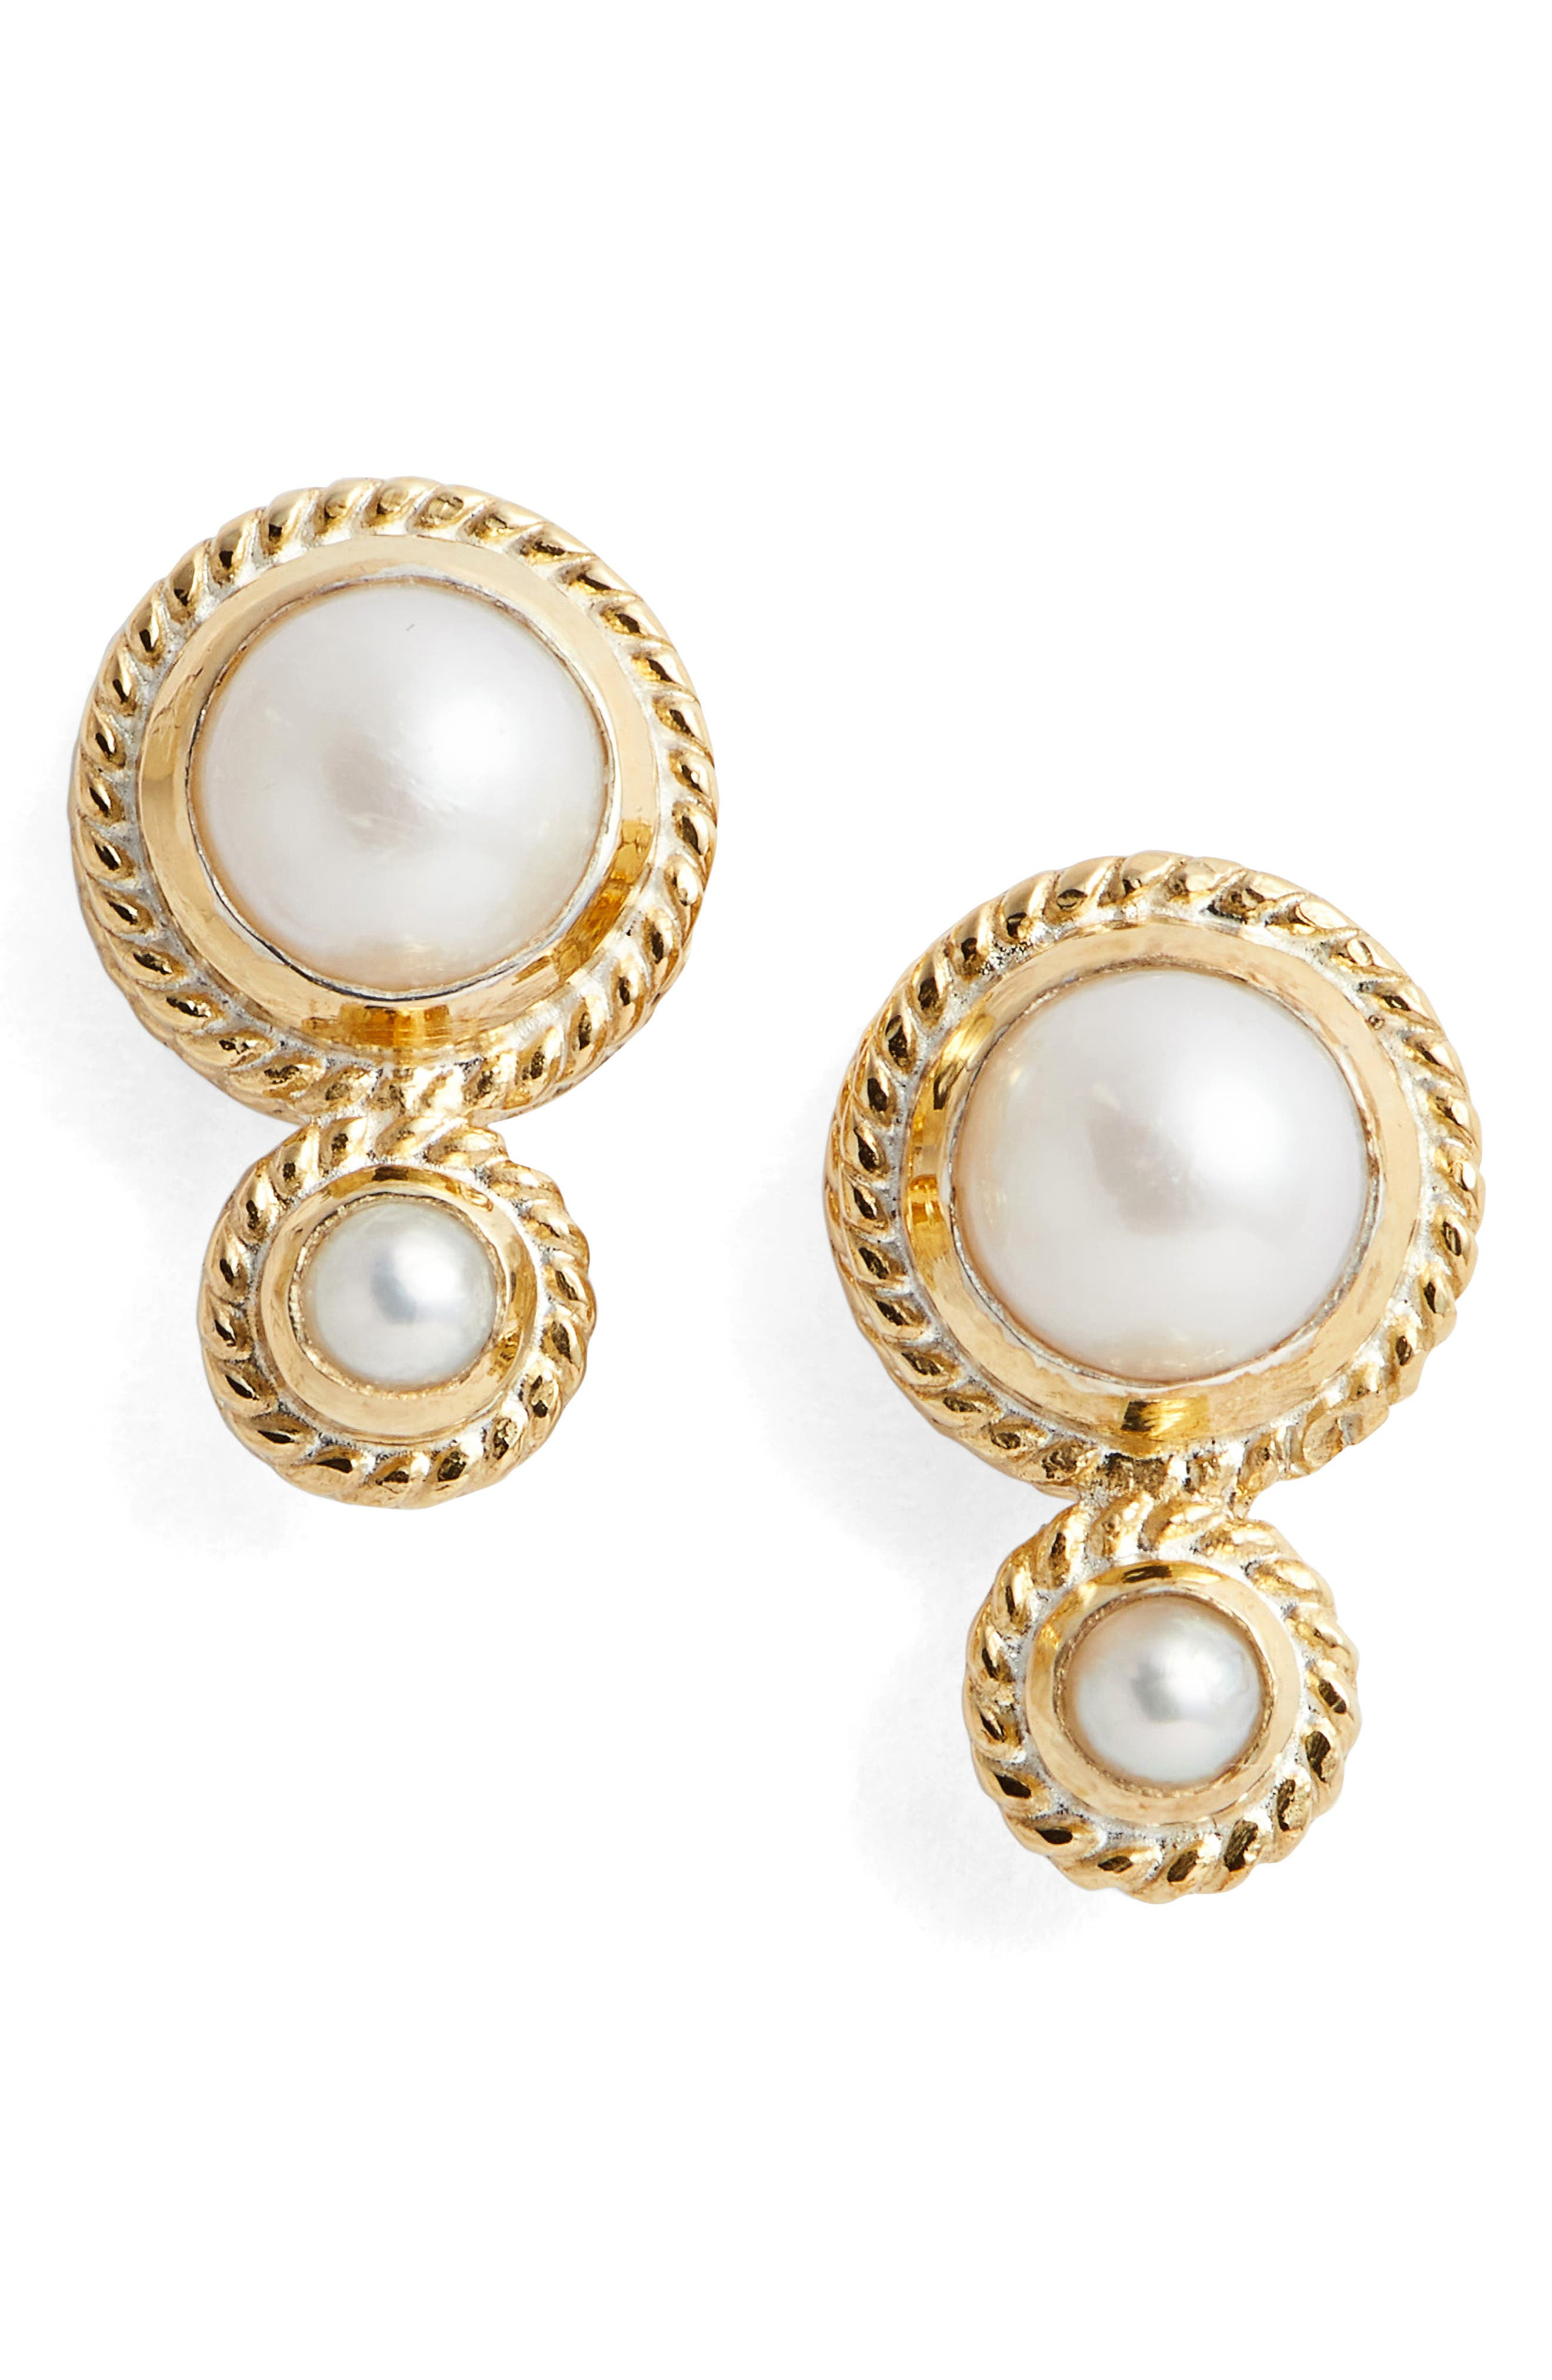 Anna Beck Pearl Double Stud Earrings